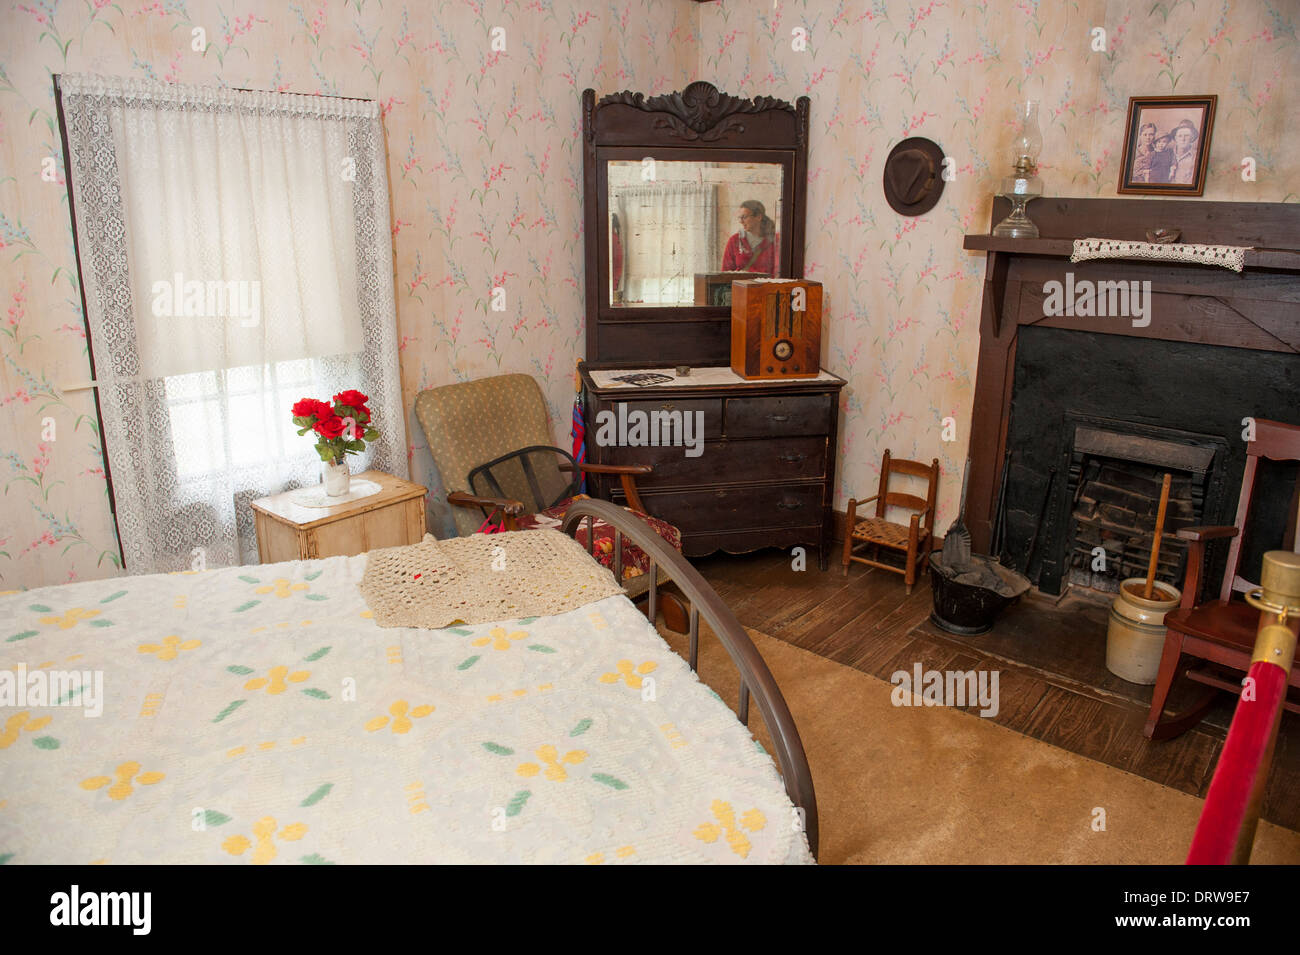 USA Mississippi MS Miss Tupelo Elvis Presley birthplace home birth interior of the bedroom - Stock Image